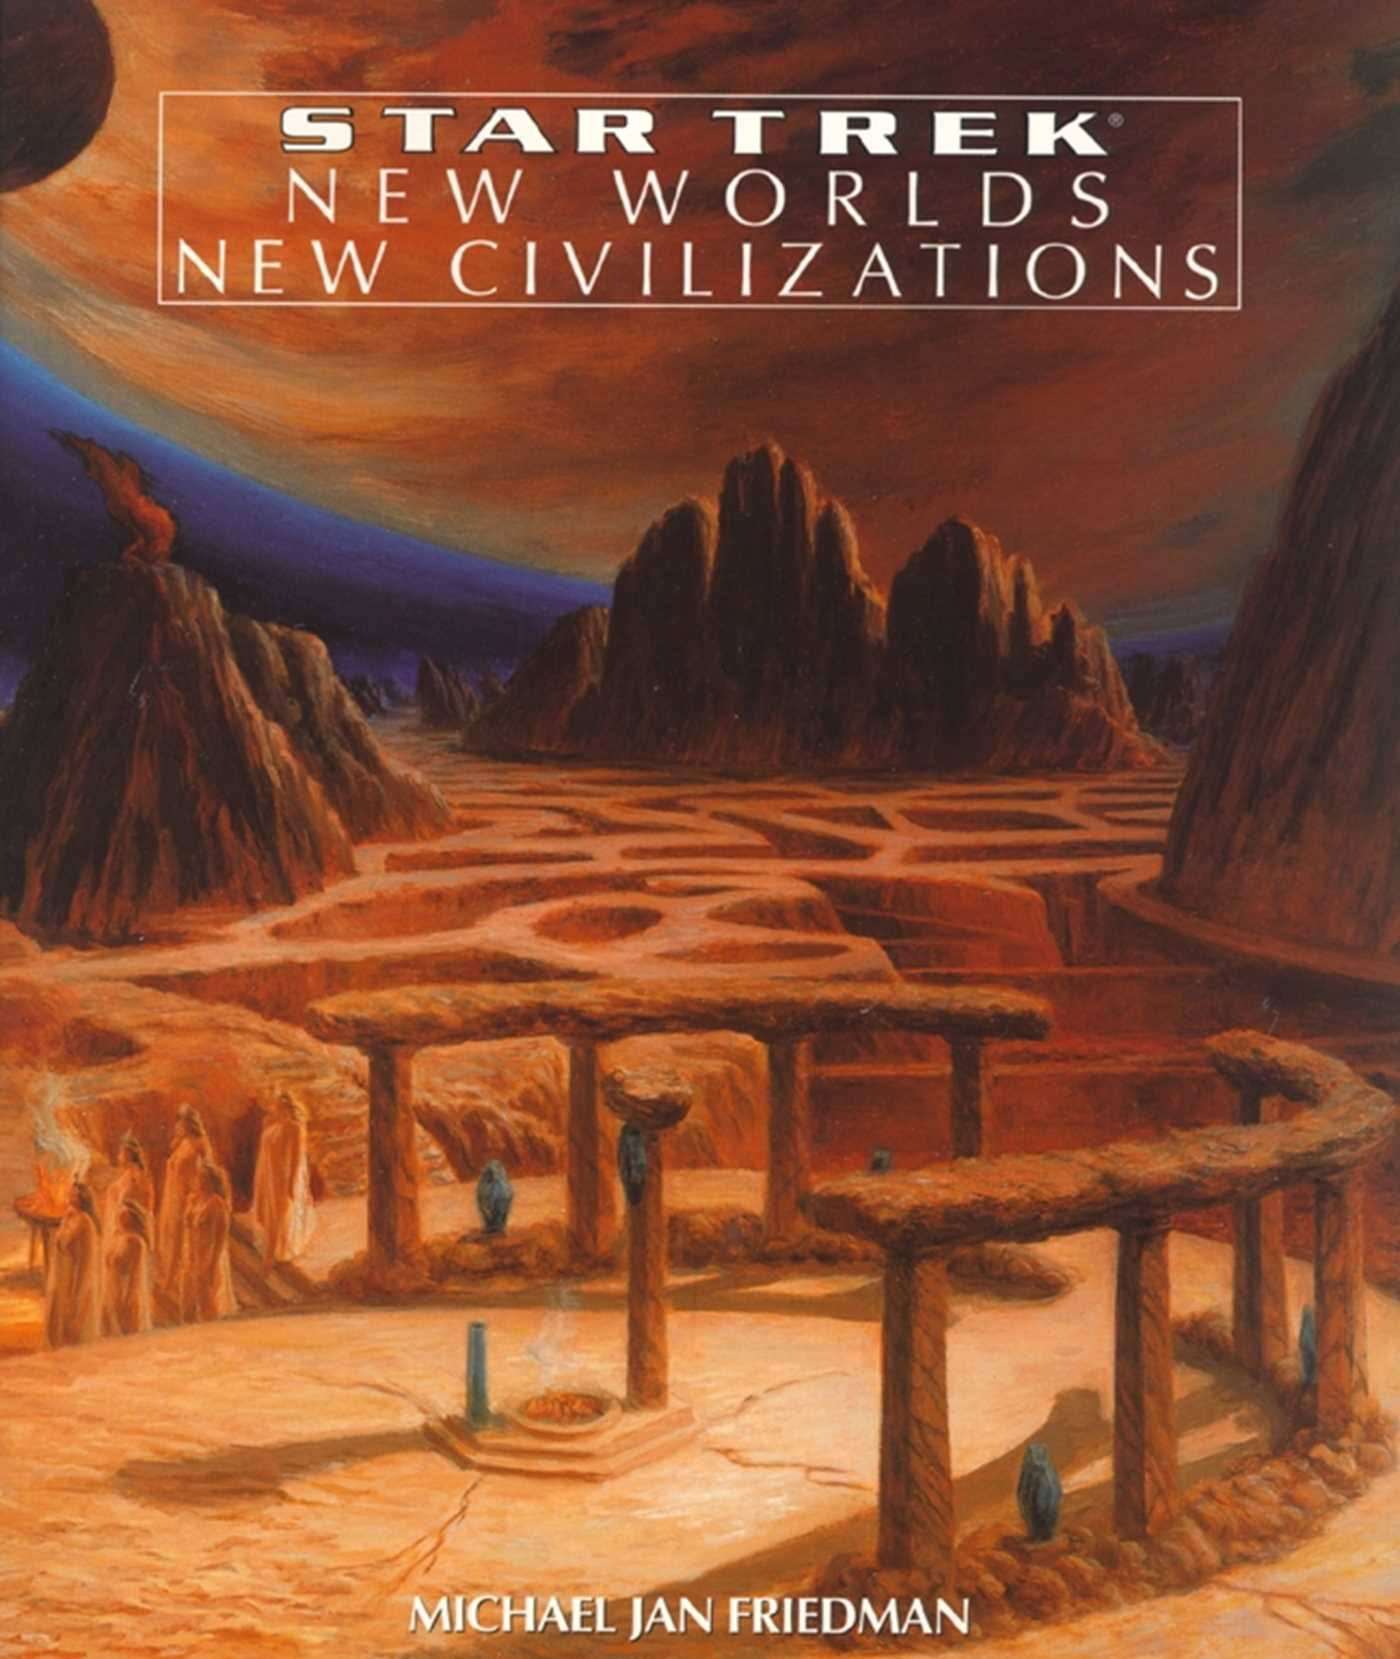 New-worlds-new-civilizations-9780743455923_hr